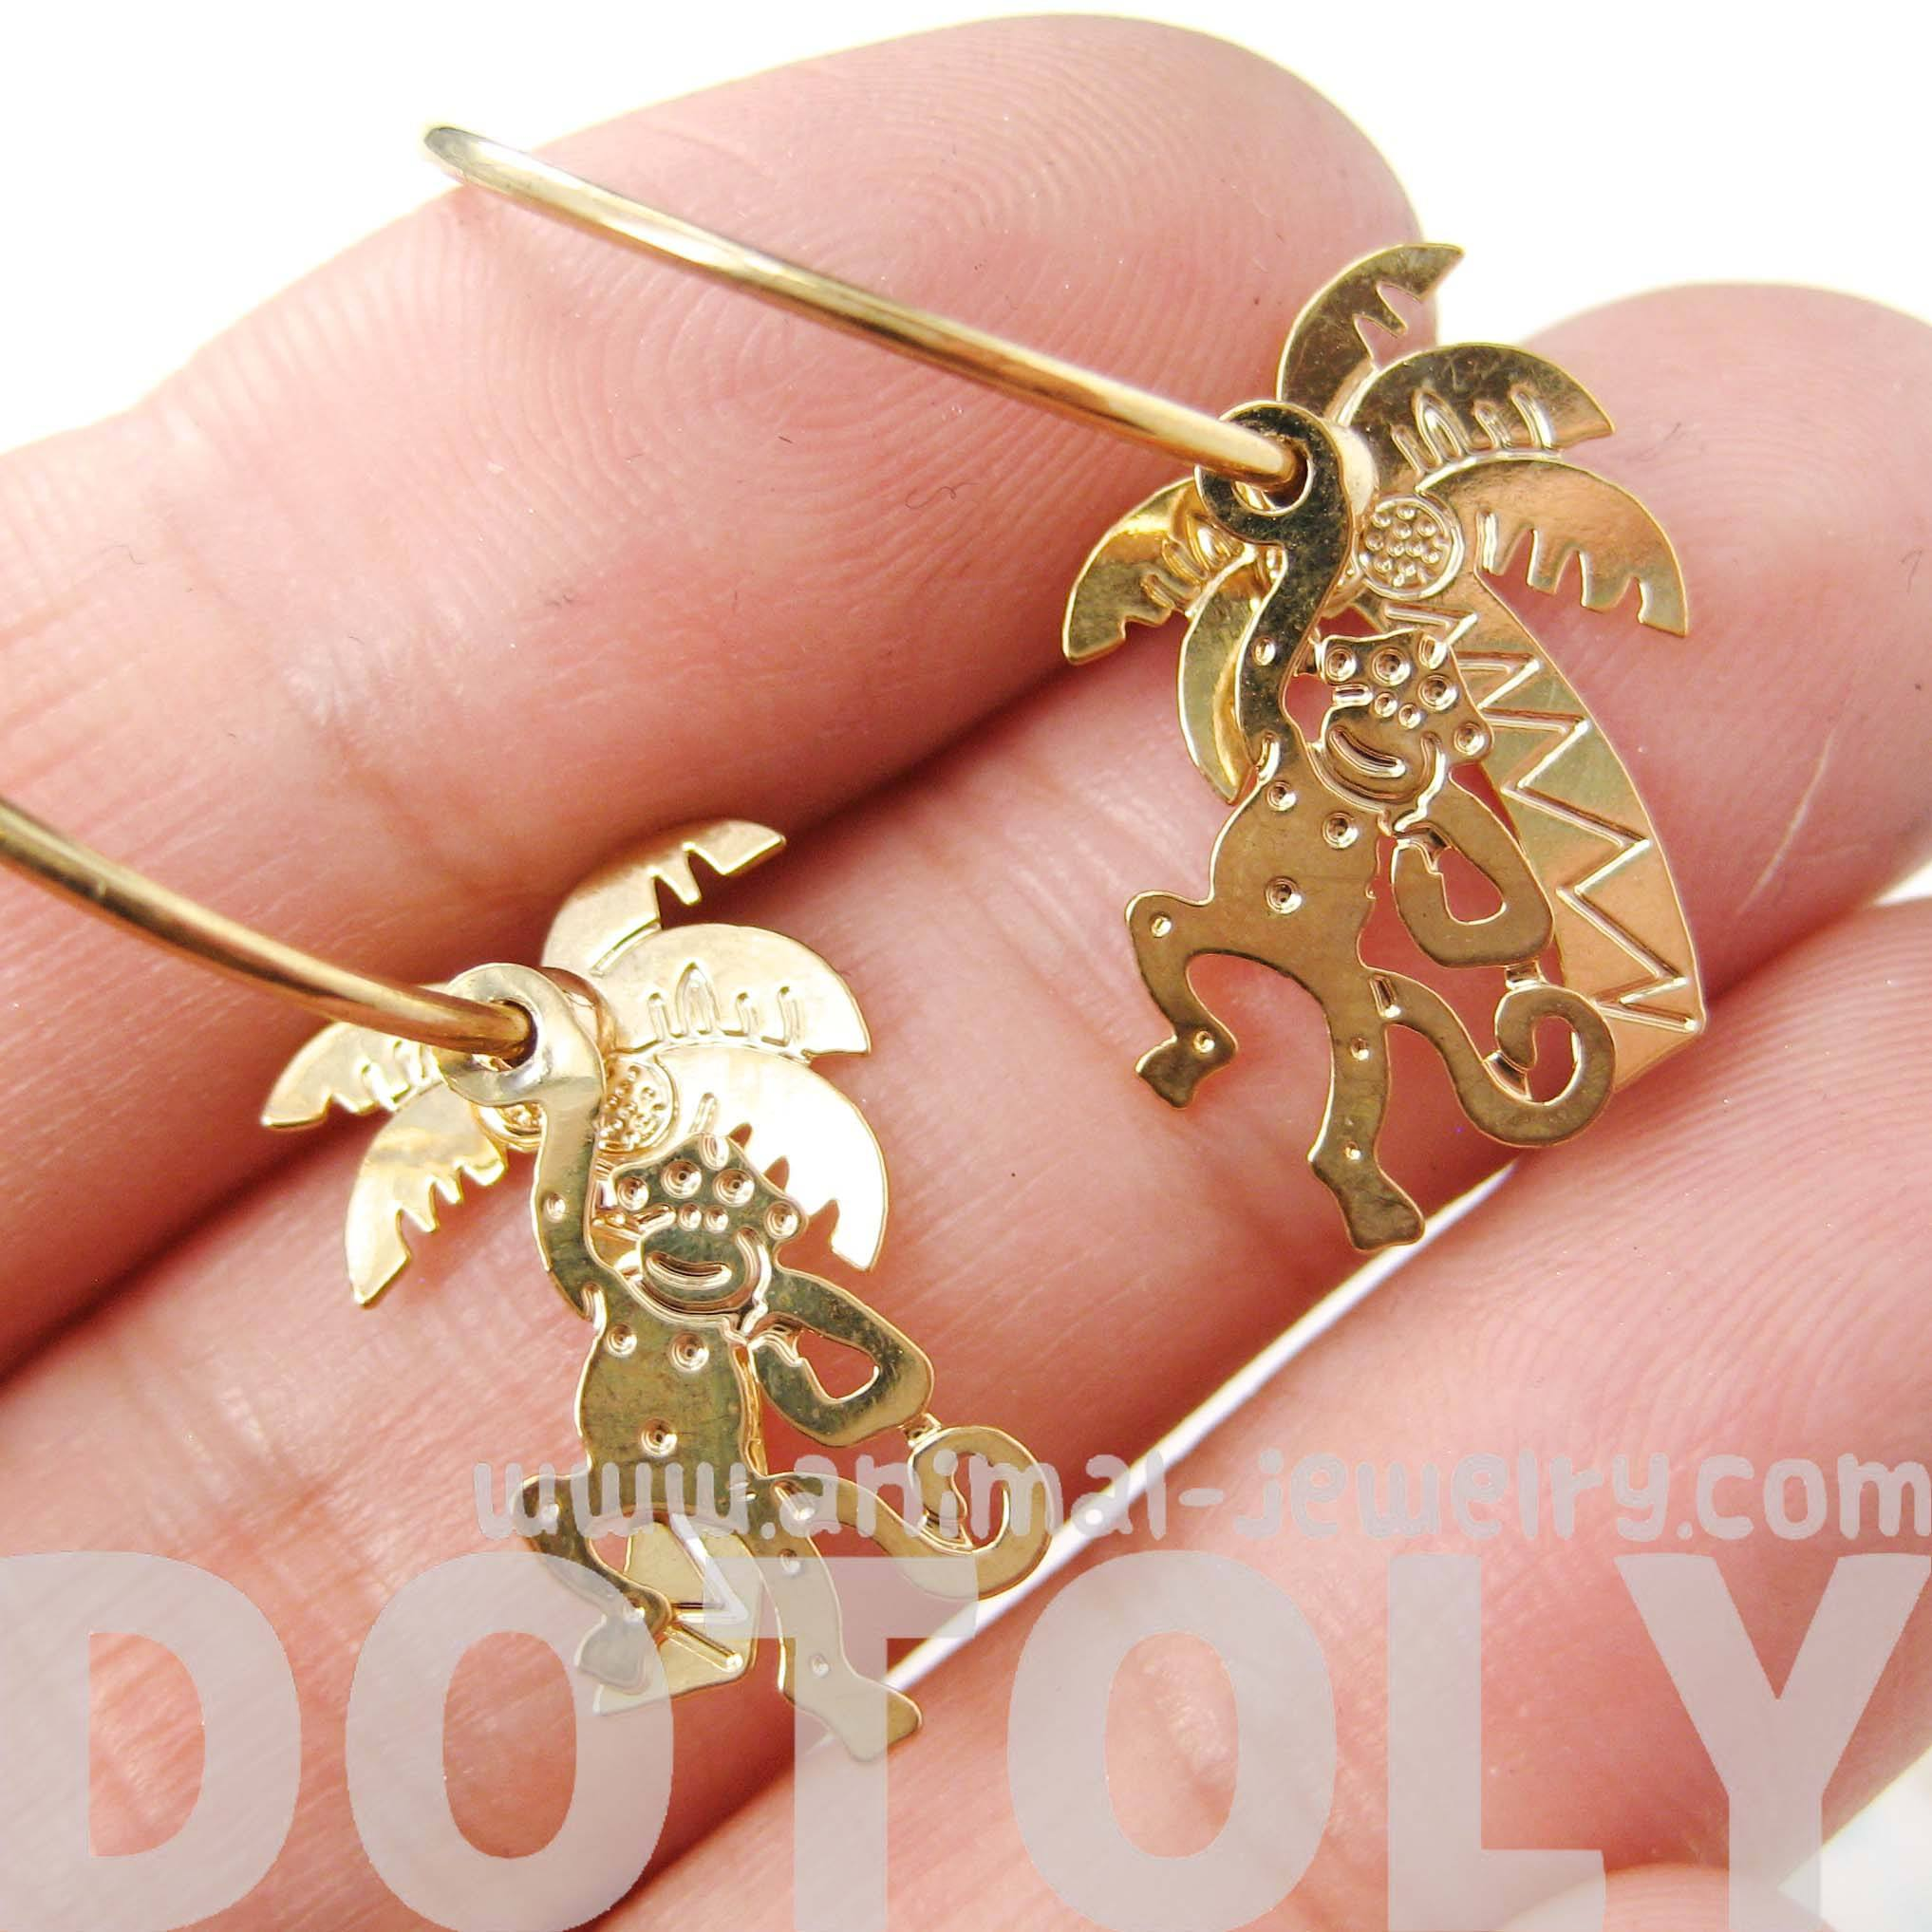 3D Monkey Swinging From A Palm Tree Dangle Hoop Earrings in Gold